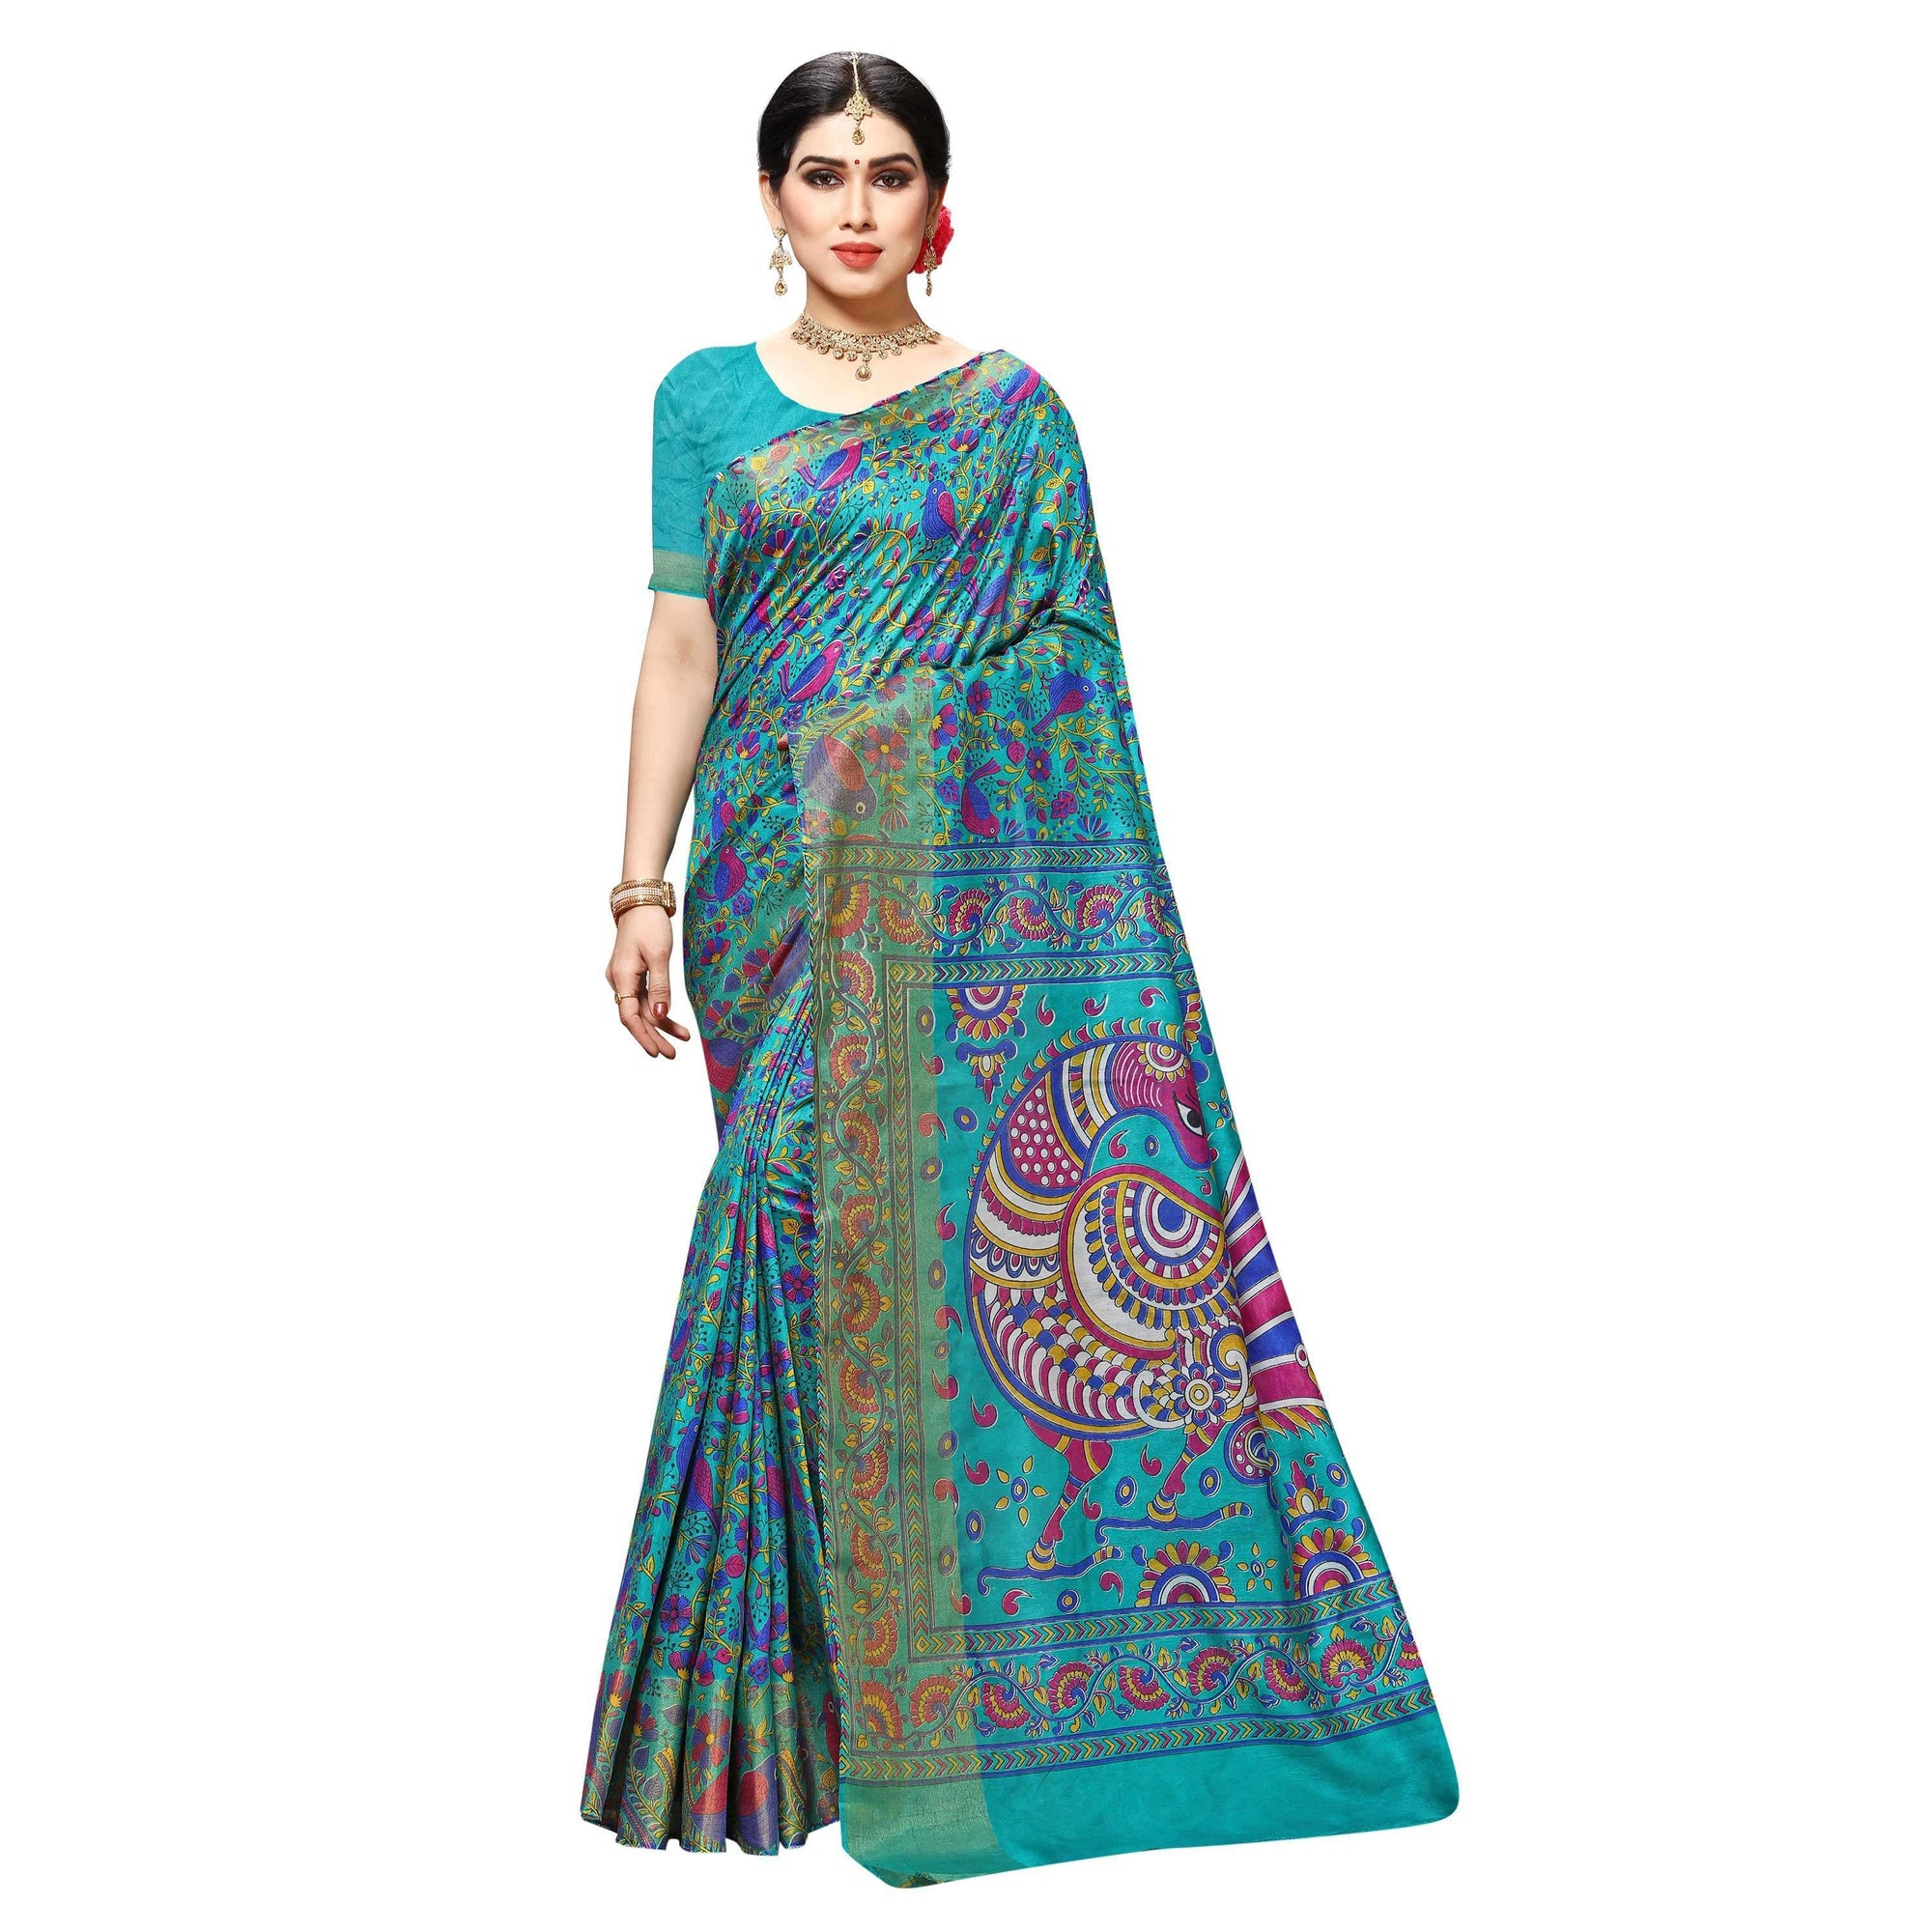 Arars Women's Banarasi Silk Saree Kanchipuram Pattu Style printed Silk Saree With Blouse (505_safair&safair )